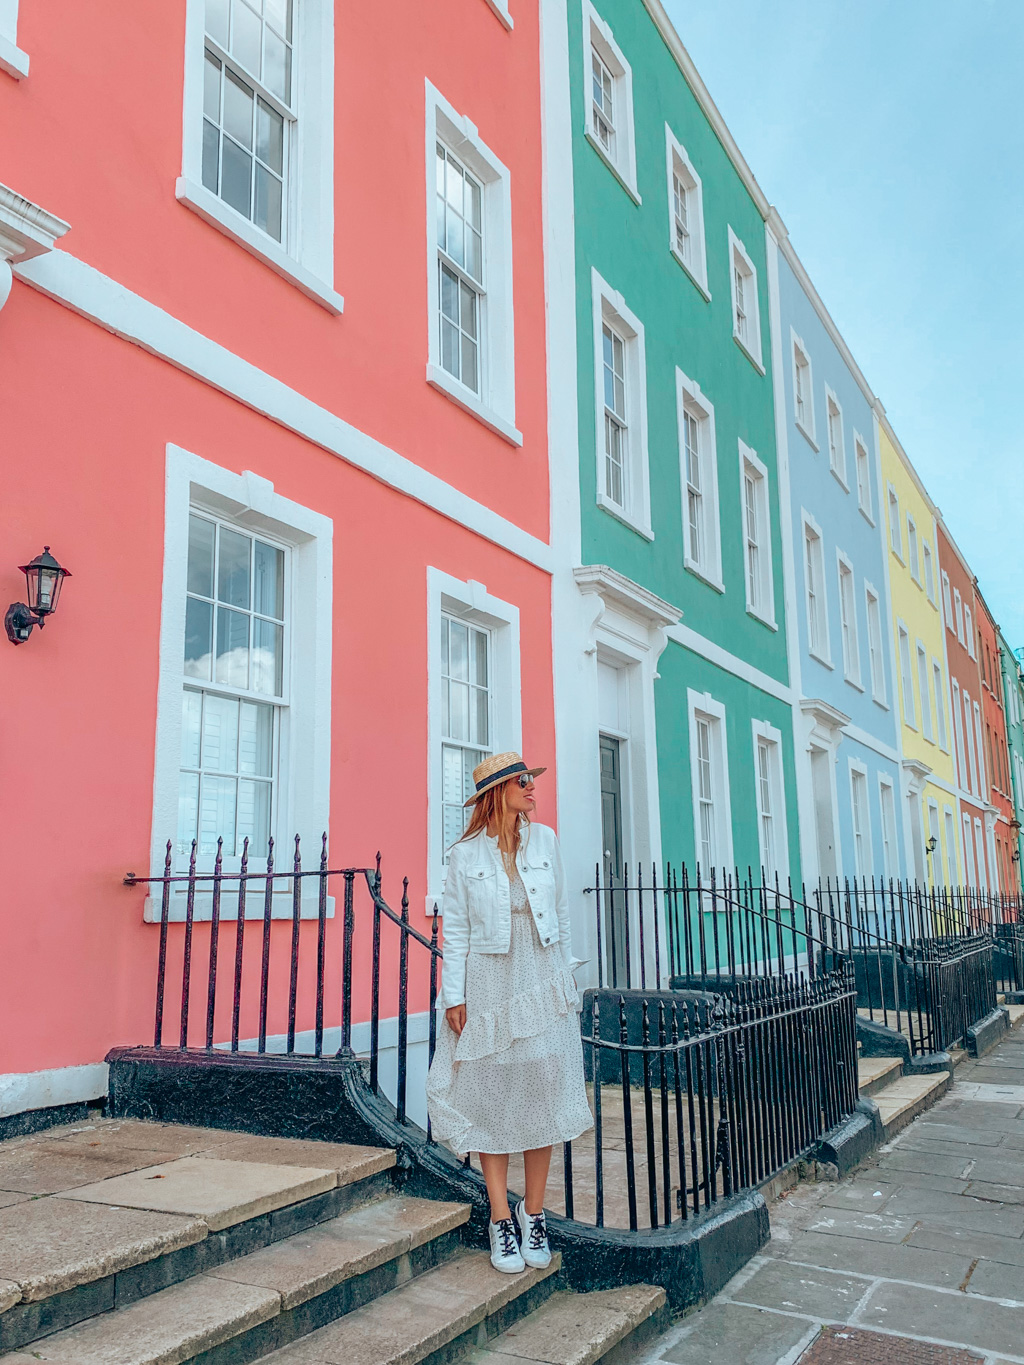 girl and colorful houses